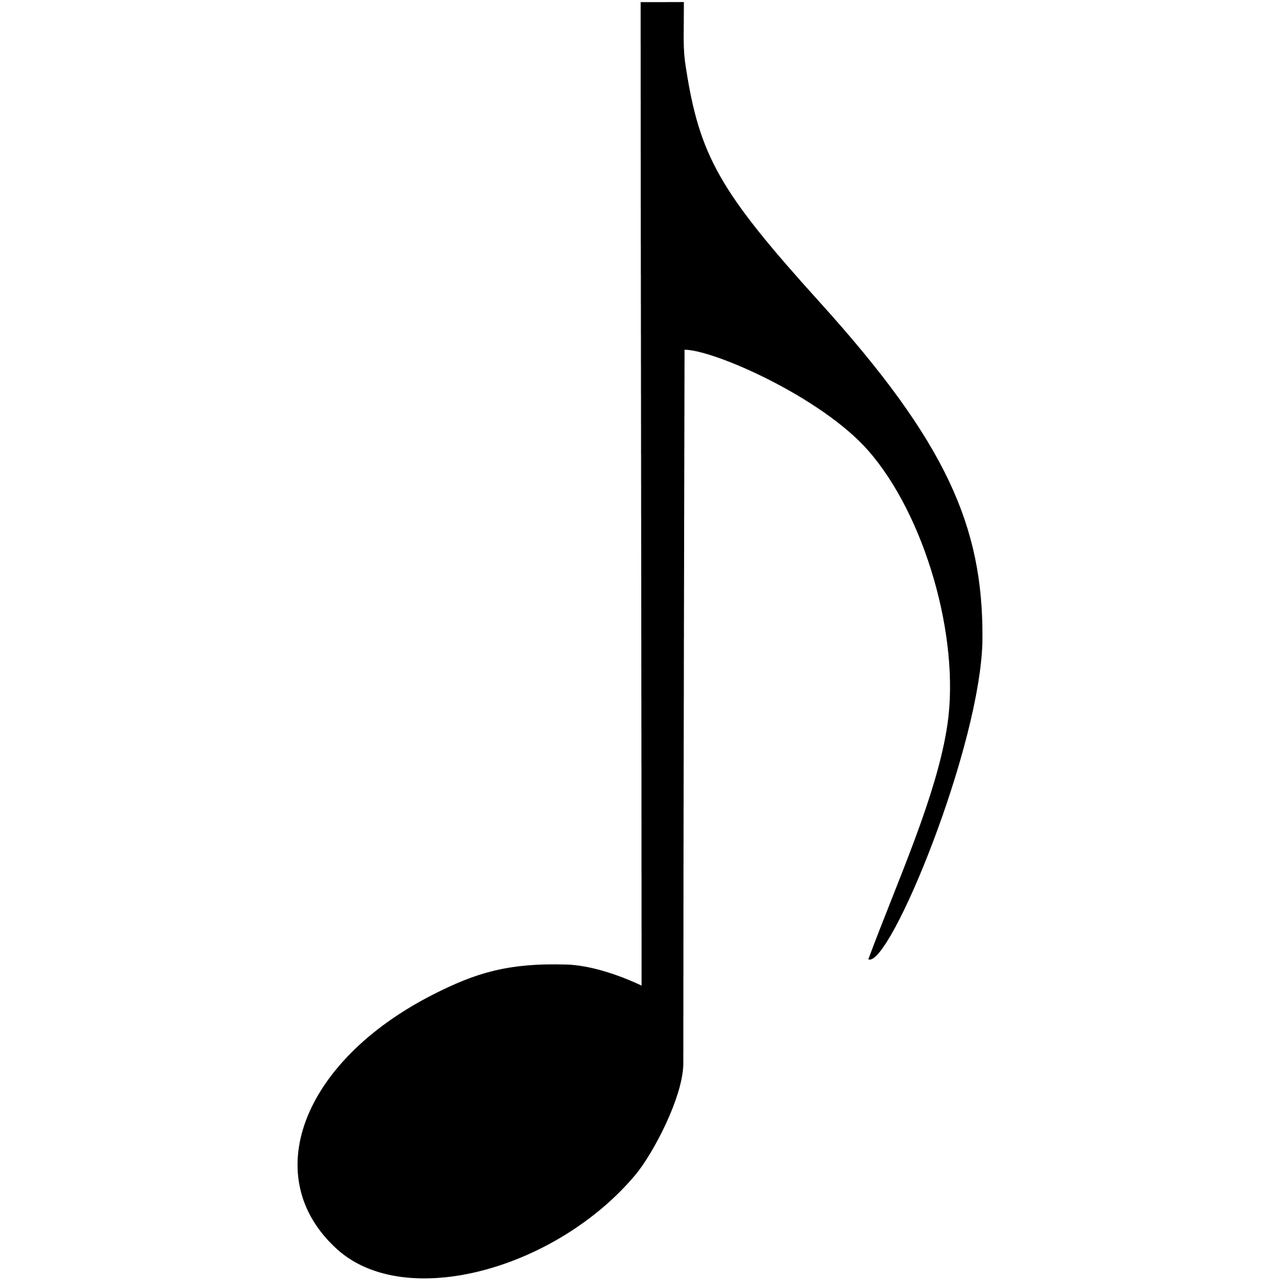 Music note clipart png. Musical eighth transparent stickpng